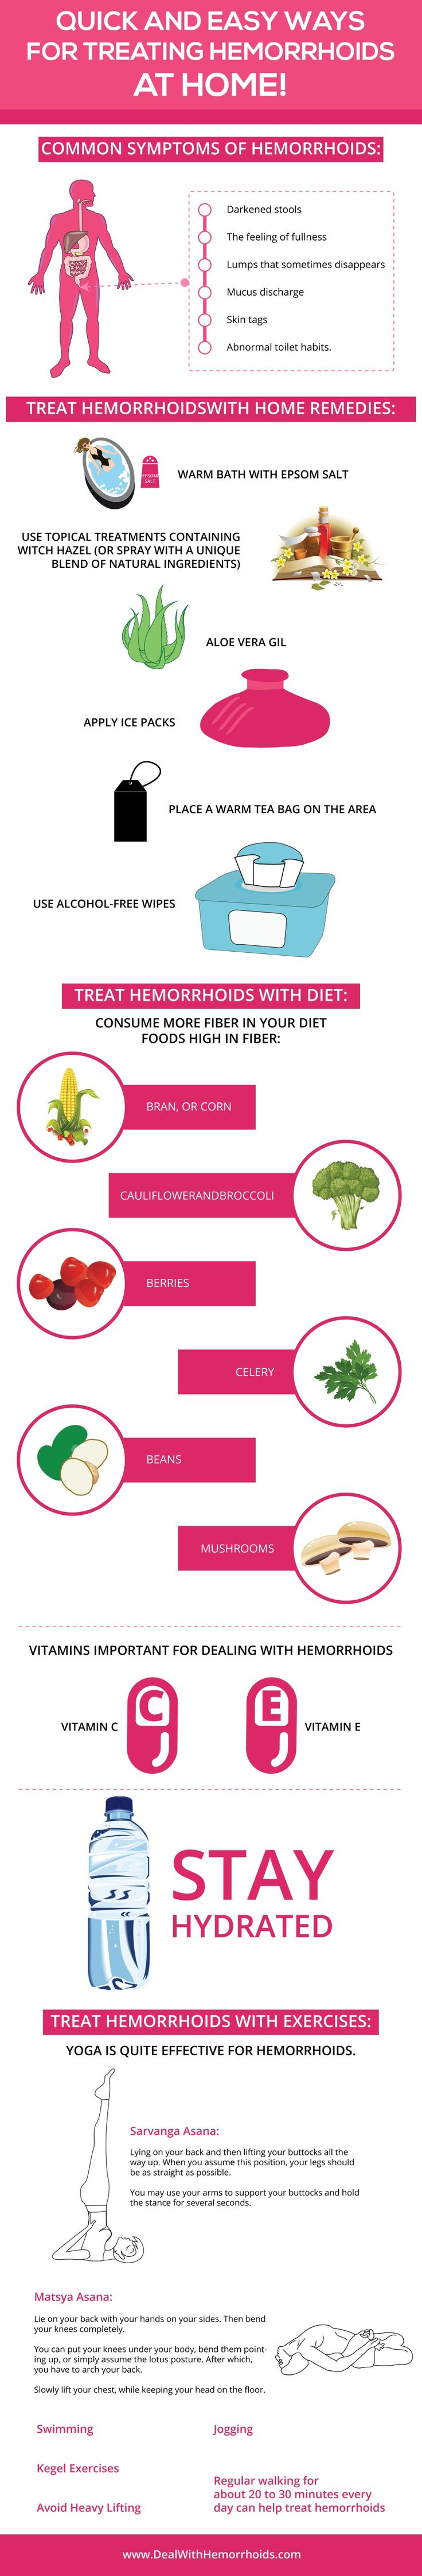 Quick and Easy Ways for Treating Hemorrhoids at Home (Infographic)!